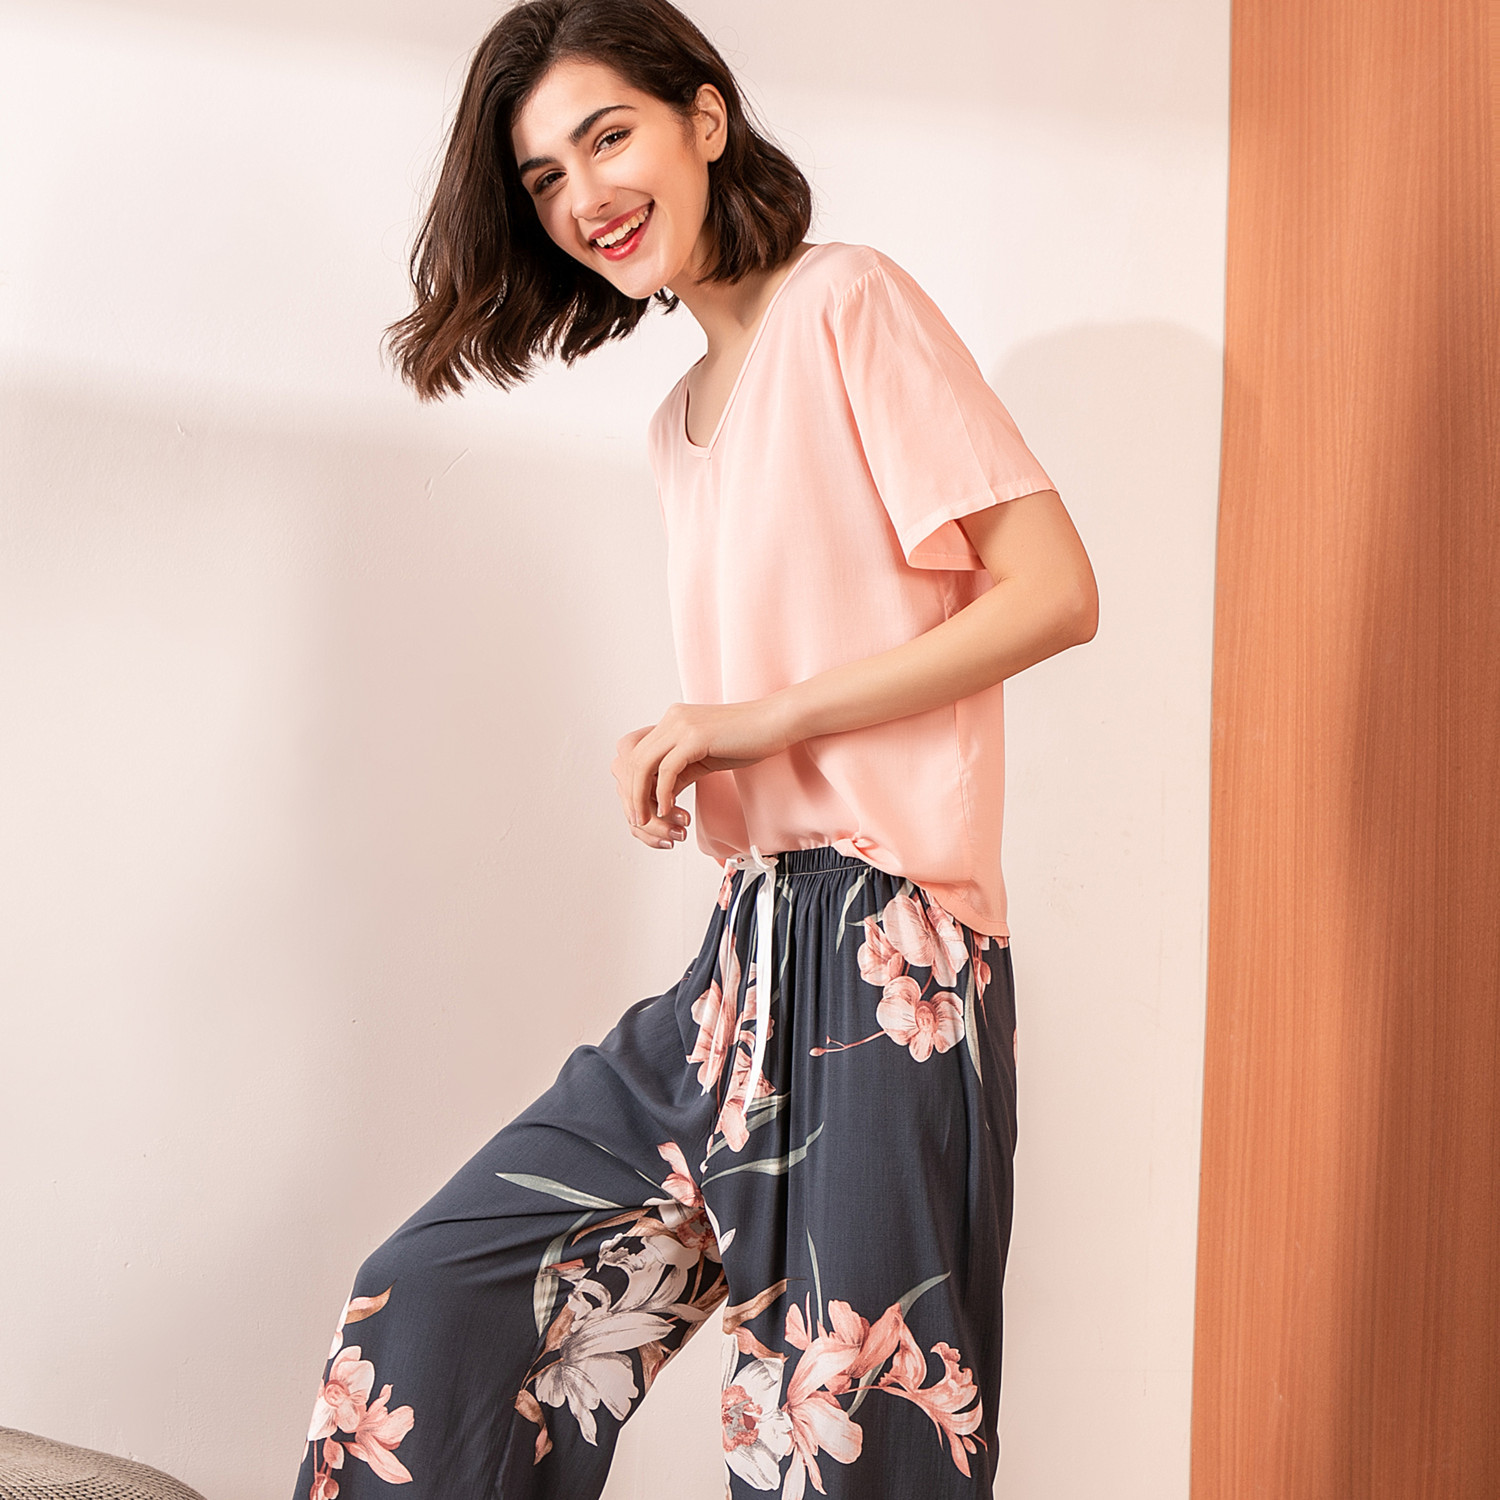 Summer Pajamas Set Women Comfortable Cotton Viscose Contrasting Color Pajamas Short Sleeve Tops With Long Trousers Ladies Pj Set